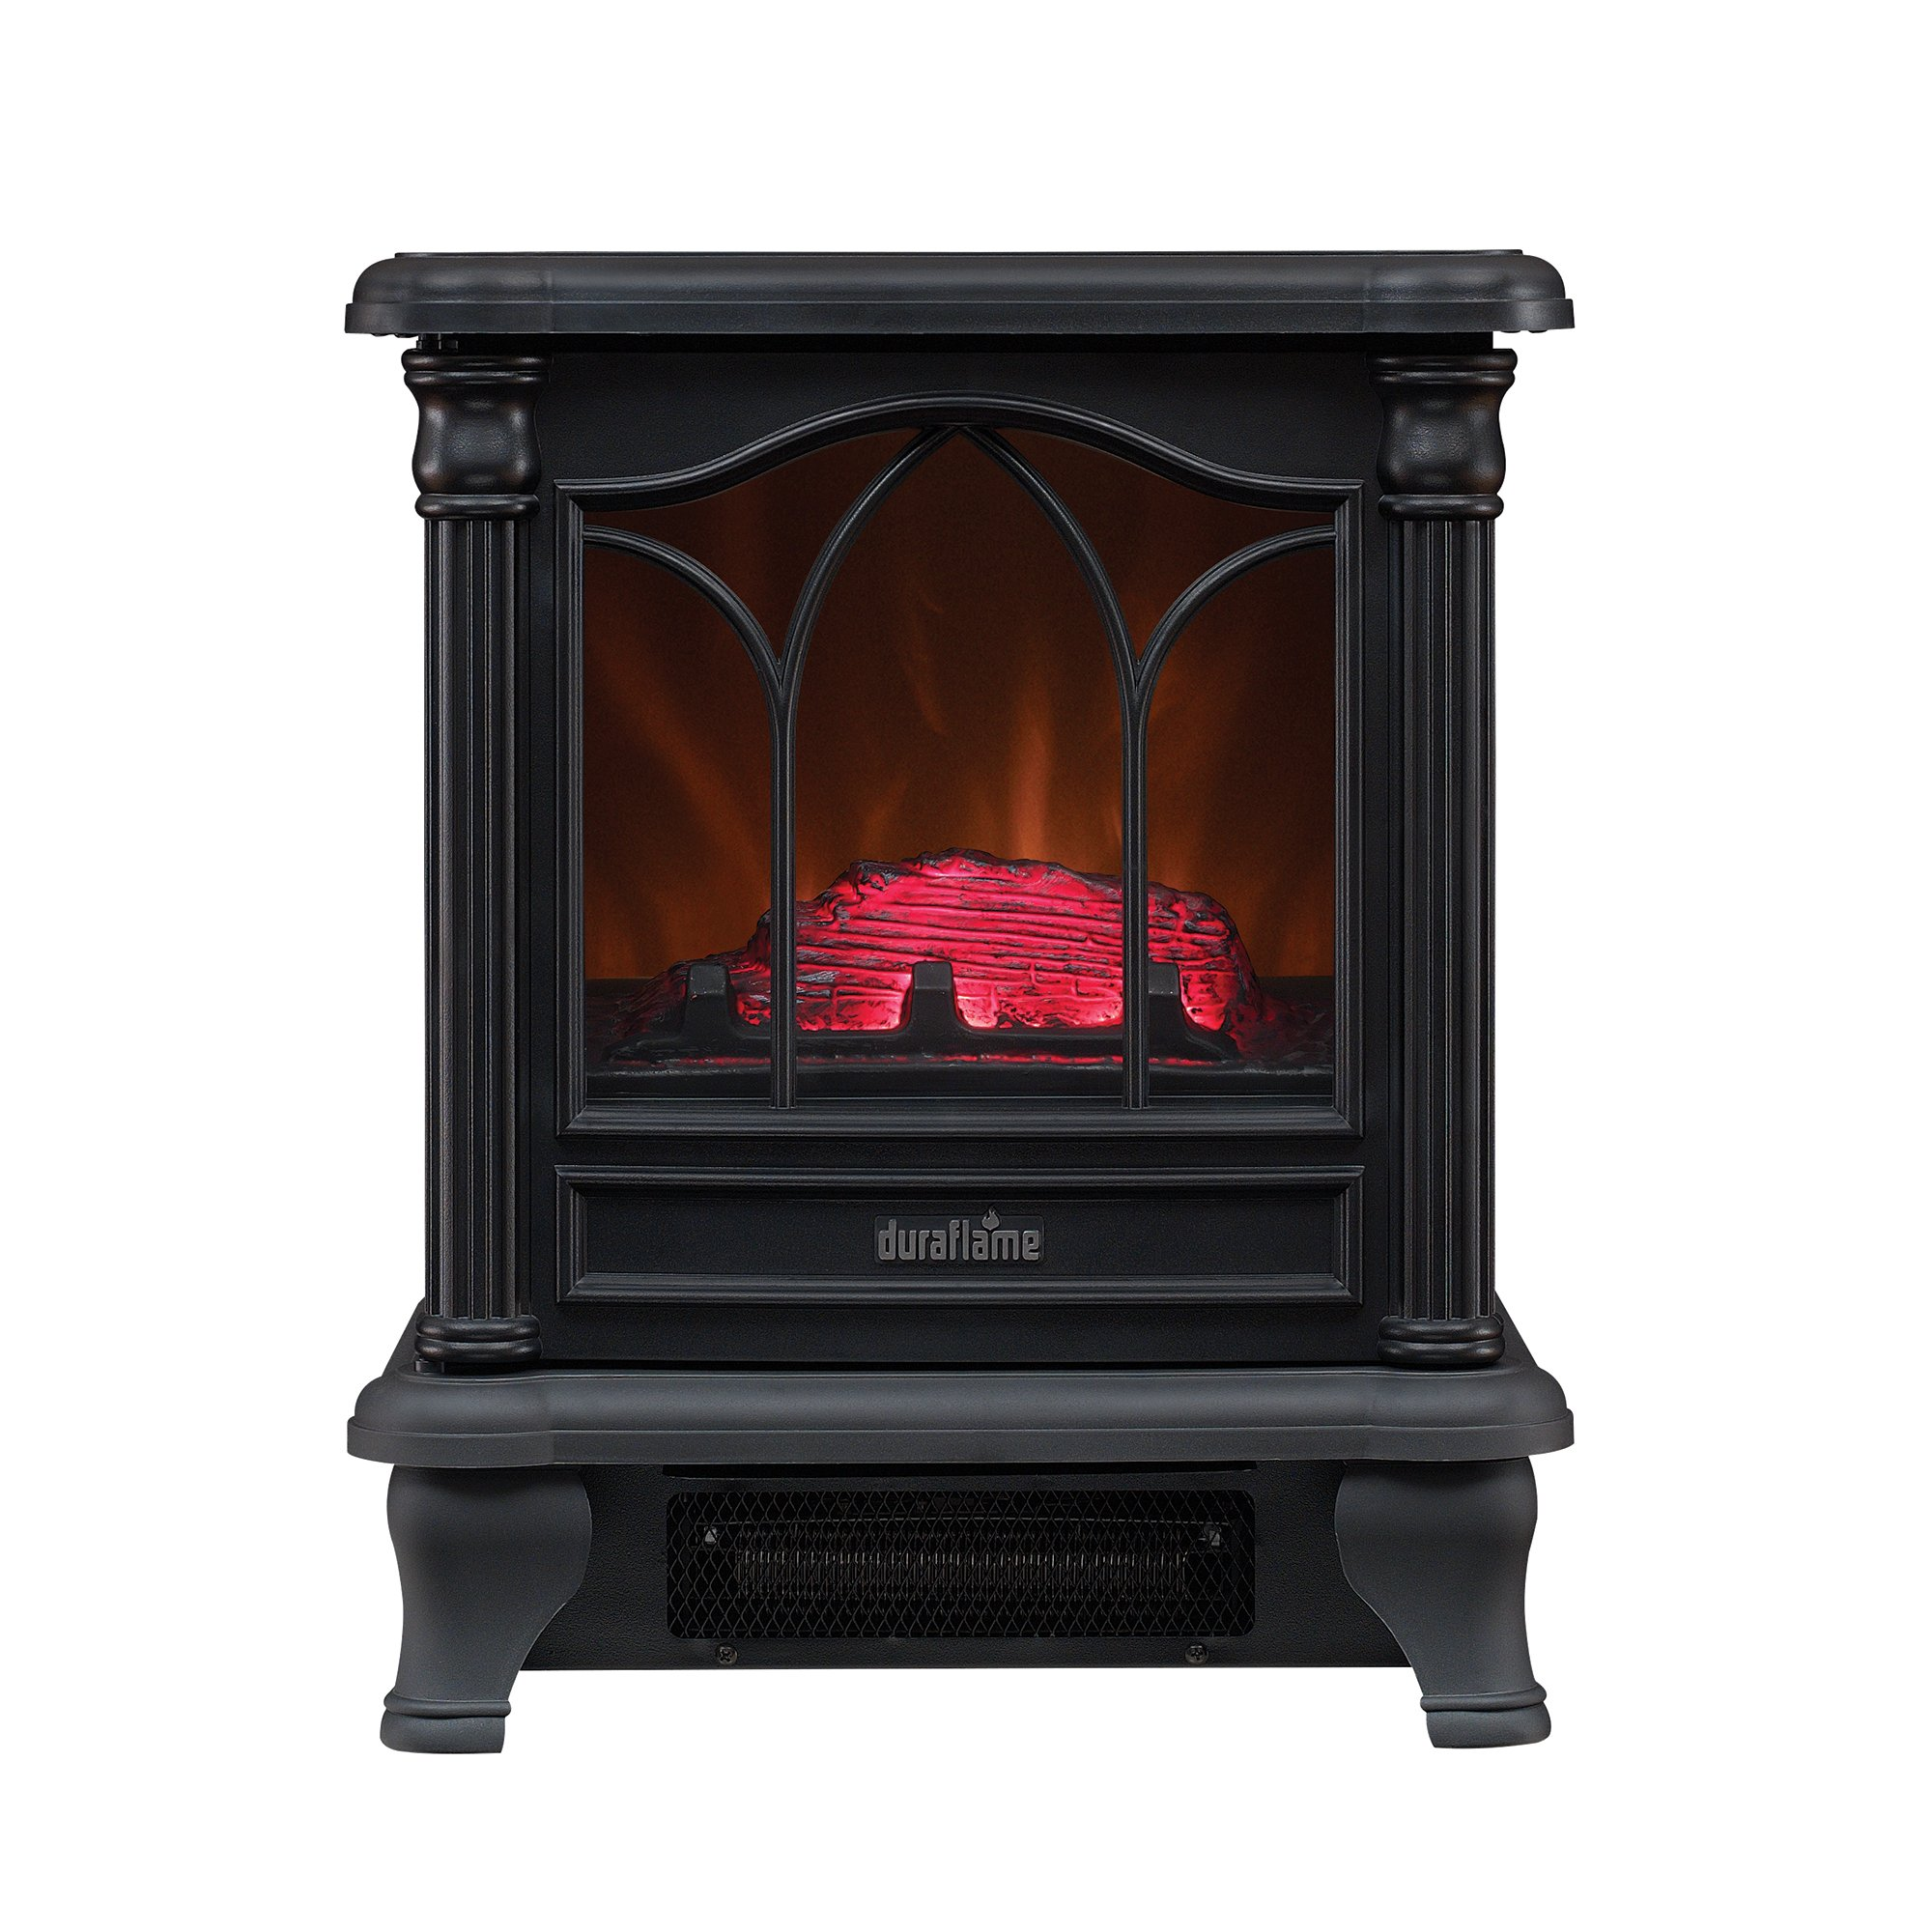 Superior Electric Fireplace Heater Amazon Part - 1: Duraflame DFS-450-2 Carleton Electric Stove With Heater, Black